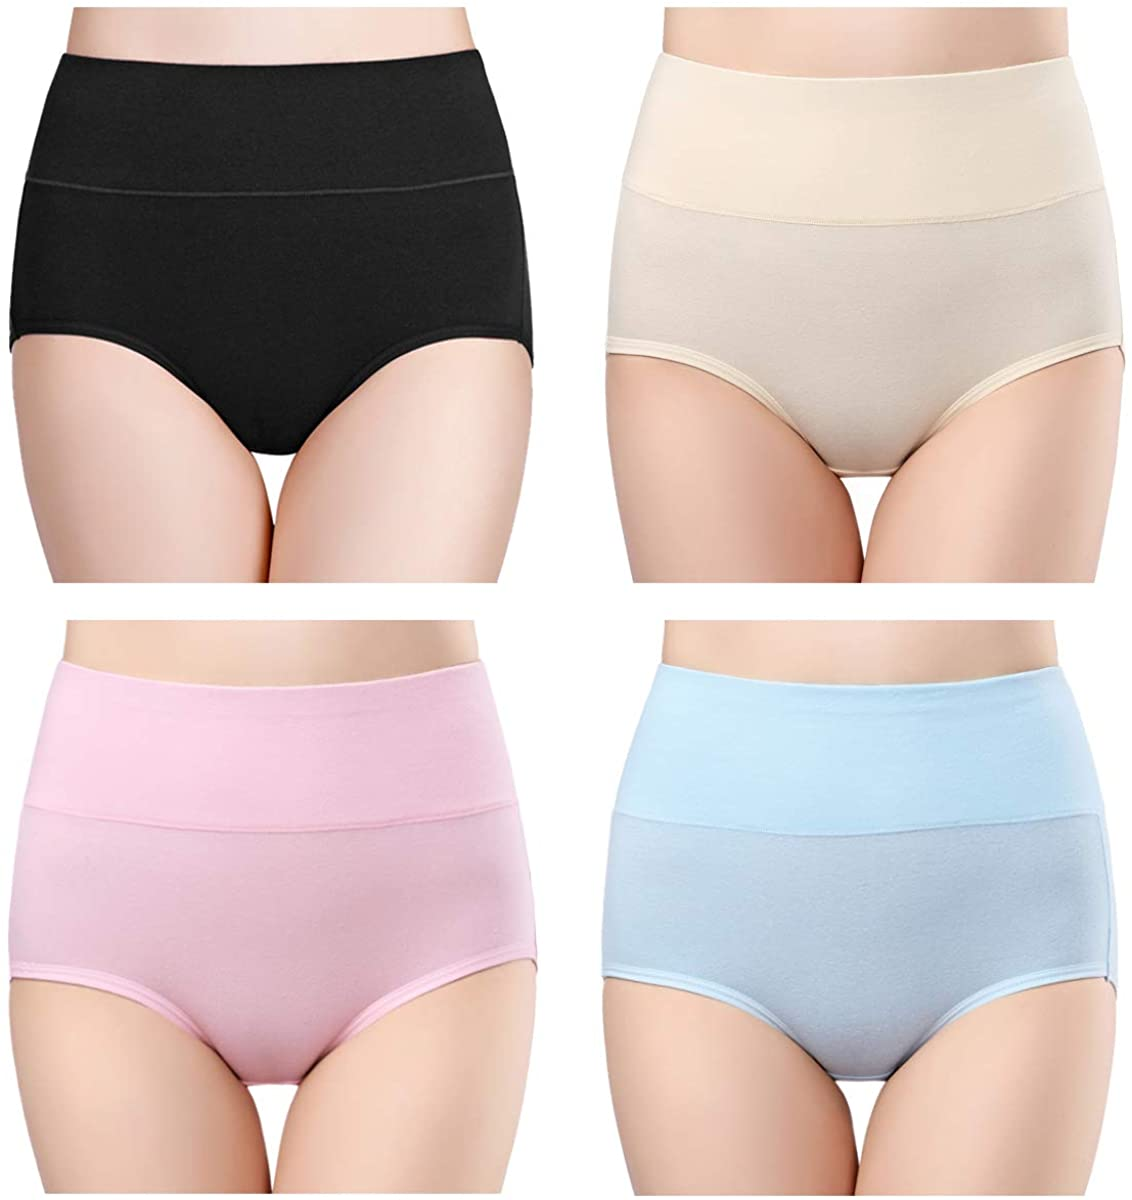 Wirarpa Women's Breathable Full Coverage High Waist Underwear